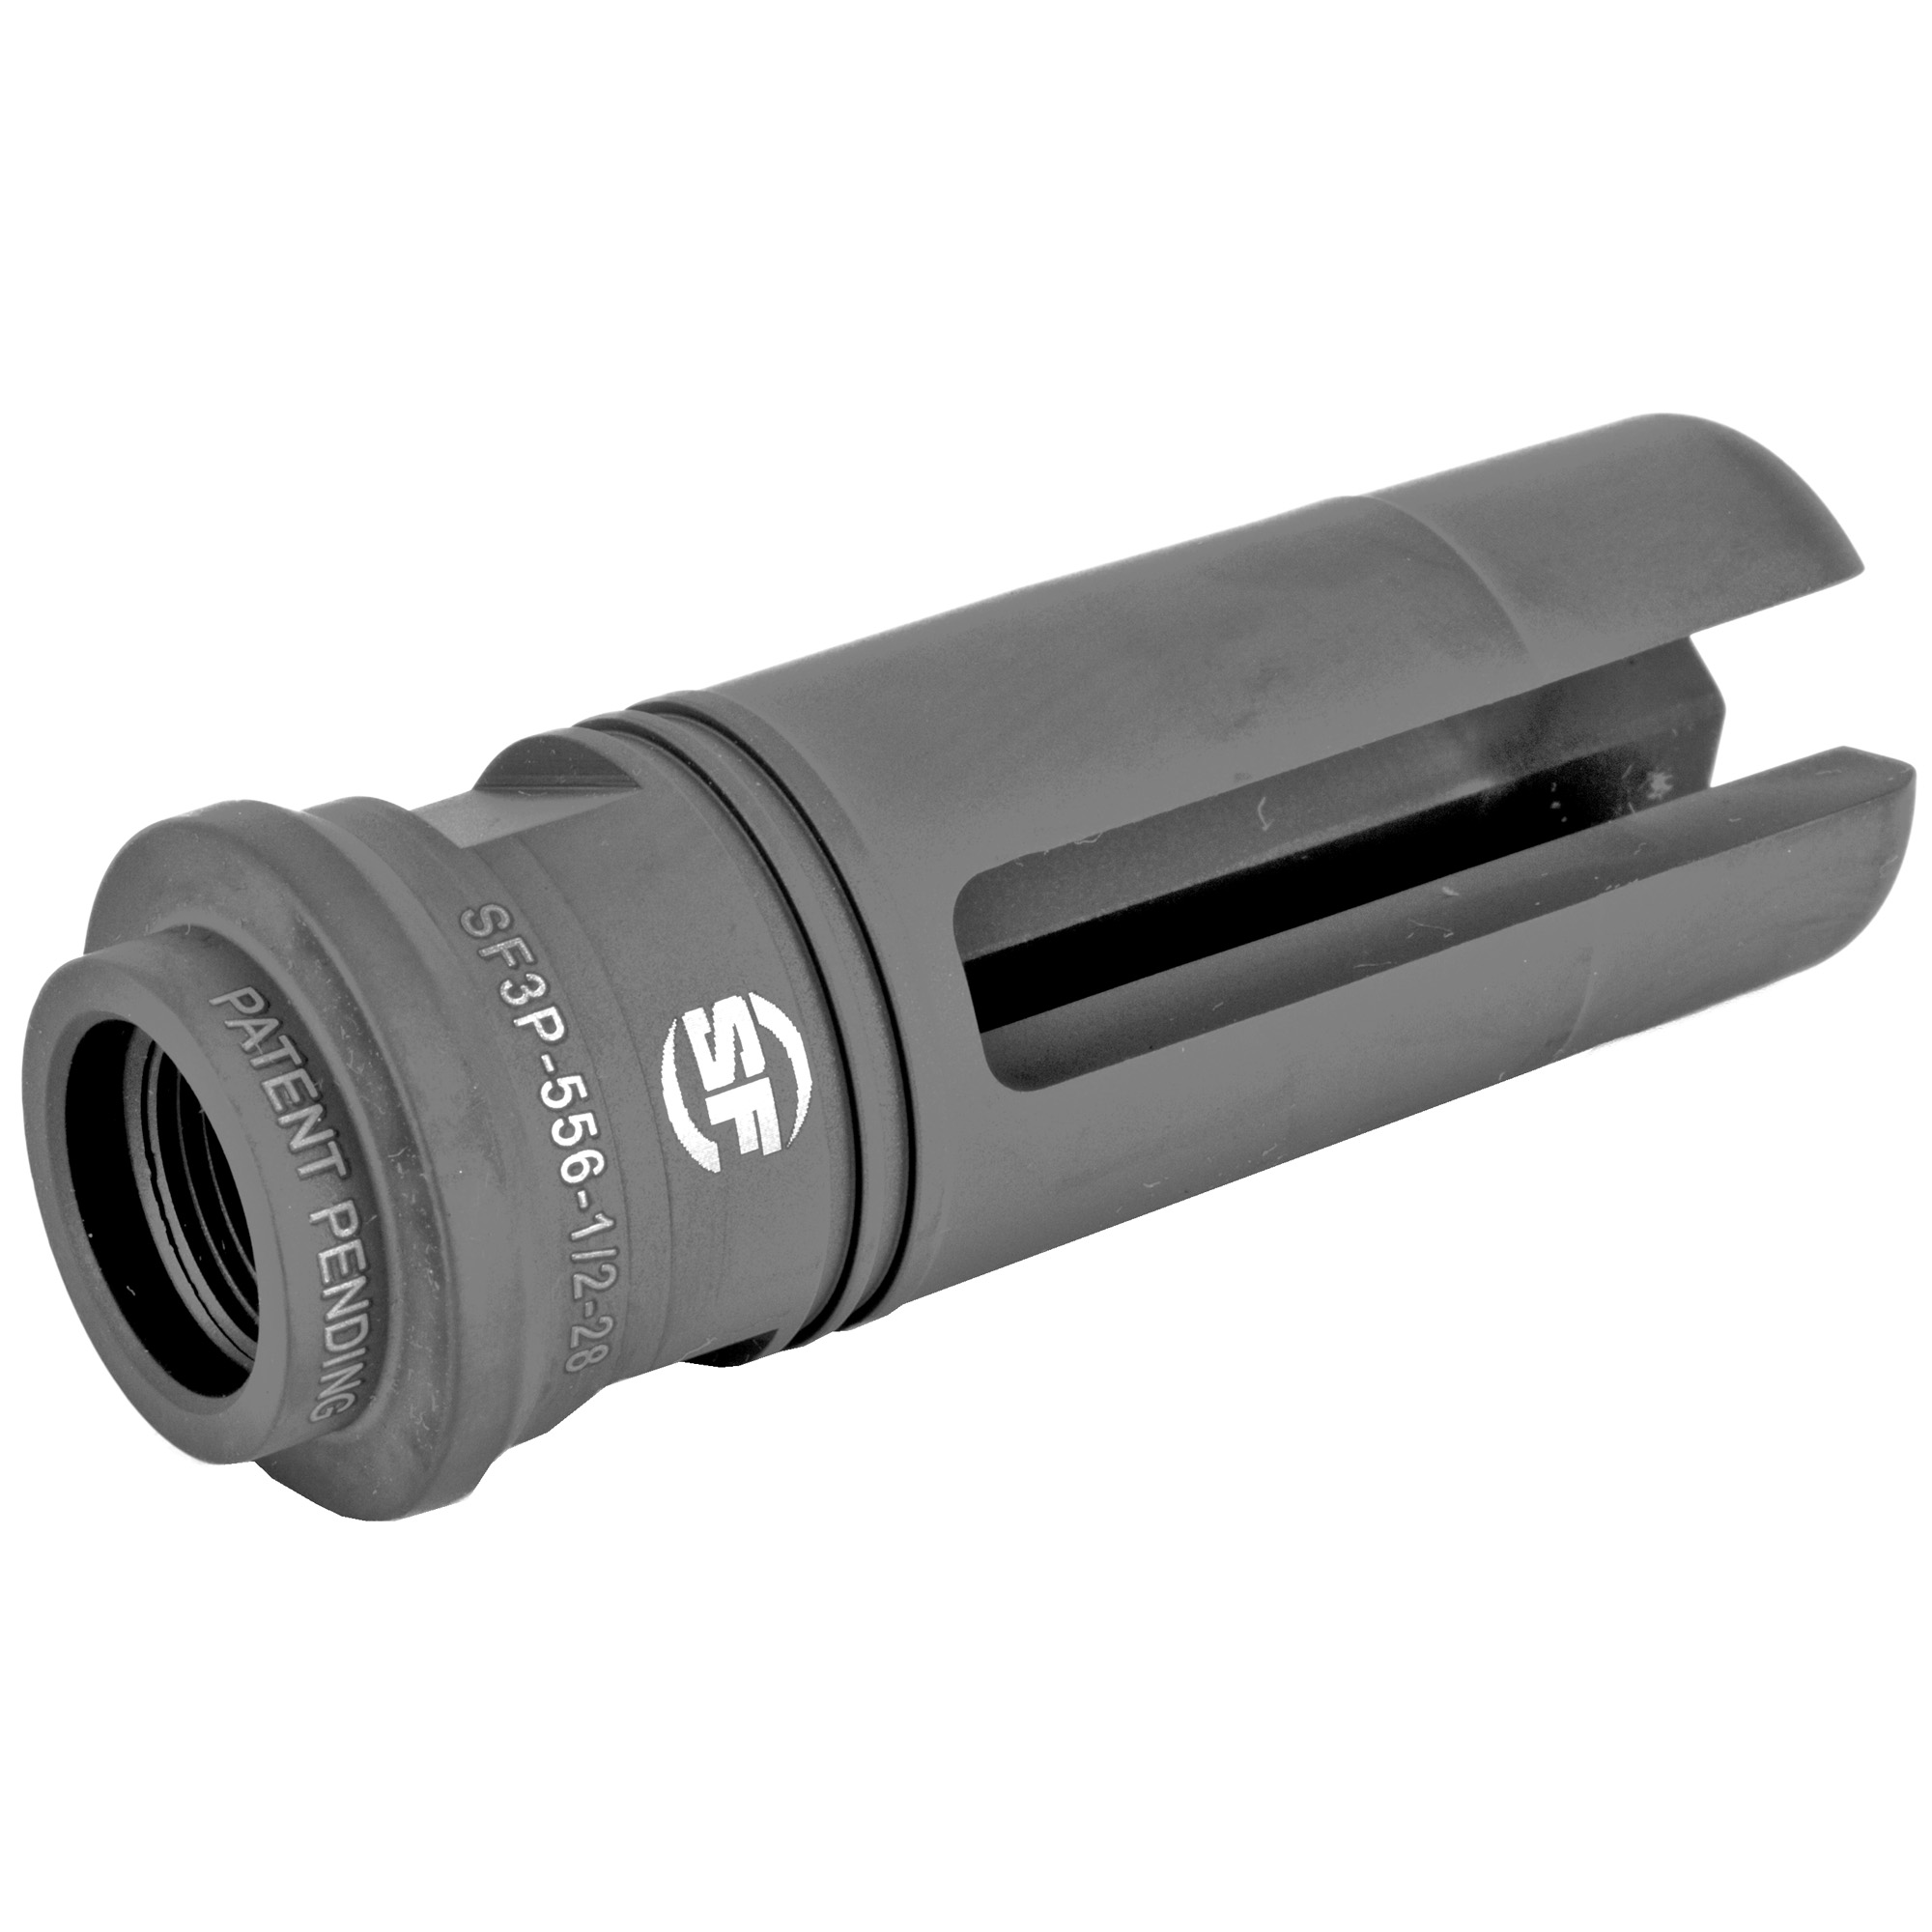 """The advanced SureFire SF3P-556-1/2-28 three-prong flash hider"""" which fits M4/M16 weapons and variants with 1/2x28 muzzle threads"""" features a patent-pending design that greatly reduces muzzle flash-typically greater than 99%-when compared with a plain muzzle. Boasting robust tines built to withstand the rigors of combat"""" the SF3P-556-1/2-28 also serves as a rock-solid mounting adapter for SureFire SOCOM Series 5.56 mm Fast-Attach(R) suppressors"""" the SOCOM556-RC model having placed first in the most extensive and rigorous suppressor testing ever conducted by US Special Operations Command. Precision machined from US mill-certified heat-treated stainless steel bar stock-and including high-precision single-point cut threads for optimum thread interface-the SF3P-556-1/2-28 flash hider is given a black Ionbond DLC coating to provide maximum protection under harsh environmental conditions and to facilitate cleaning"""" even after extreme use. When used in conjunction with a SureFire SOCOM Series suppressor"""" the patent-pending design of the SF3P-556-1/2-28 provides multiple bearing surfaces to ensure superior suppressor alignment and to prevent the audible ringing of tines inside the suppressor. A rear labyrinth seal minimizes potential carbon buildup in the indexing system and facilitates suppressor removal after extended firing. SureFire flash hiders are individually inspected for concentricity and alignment and are covered by SureFire's No-Hassle Guarantee."""